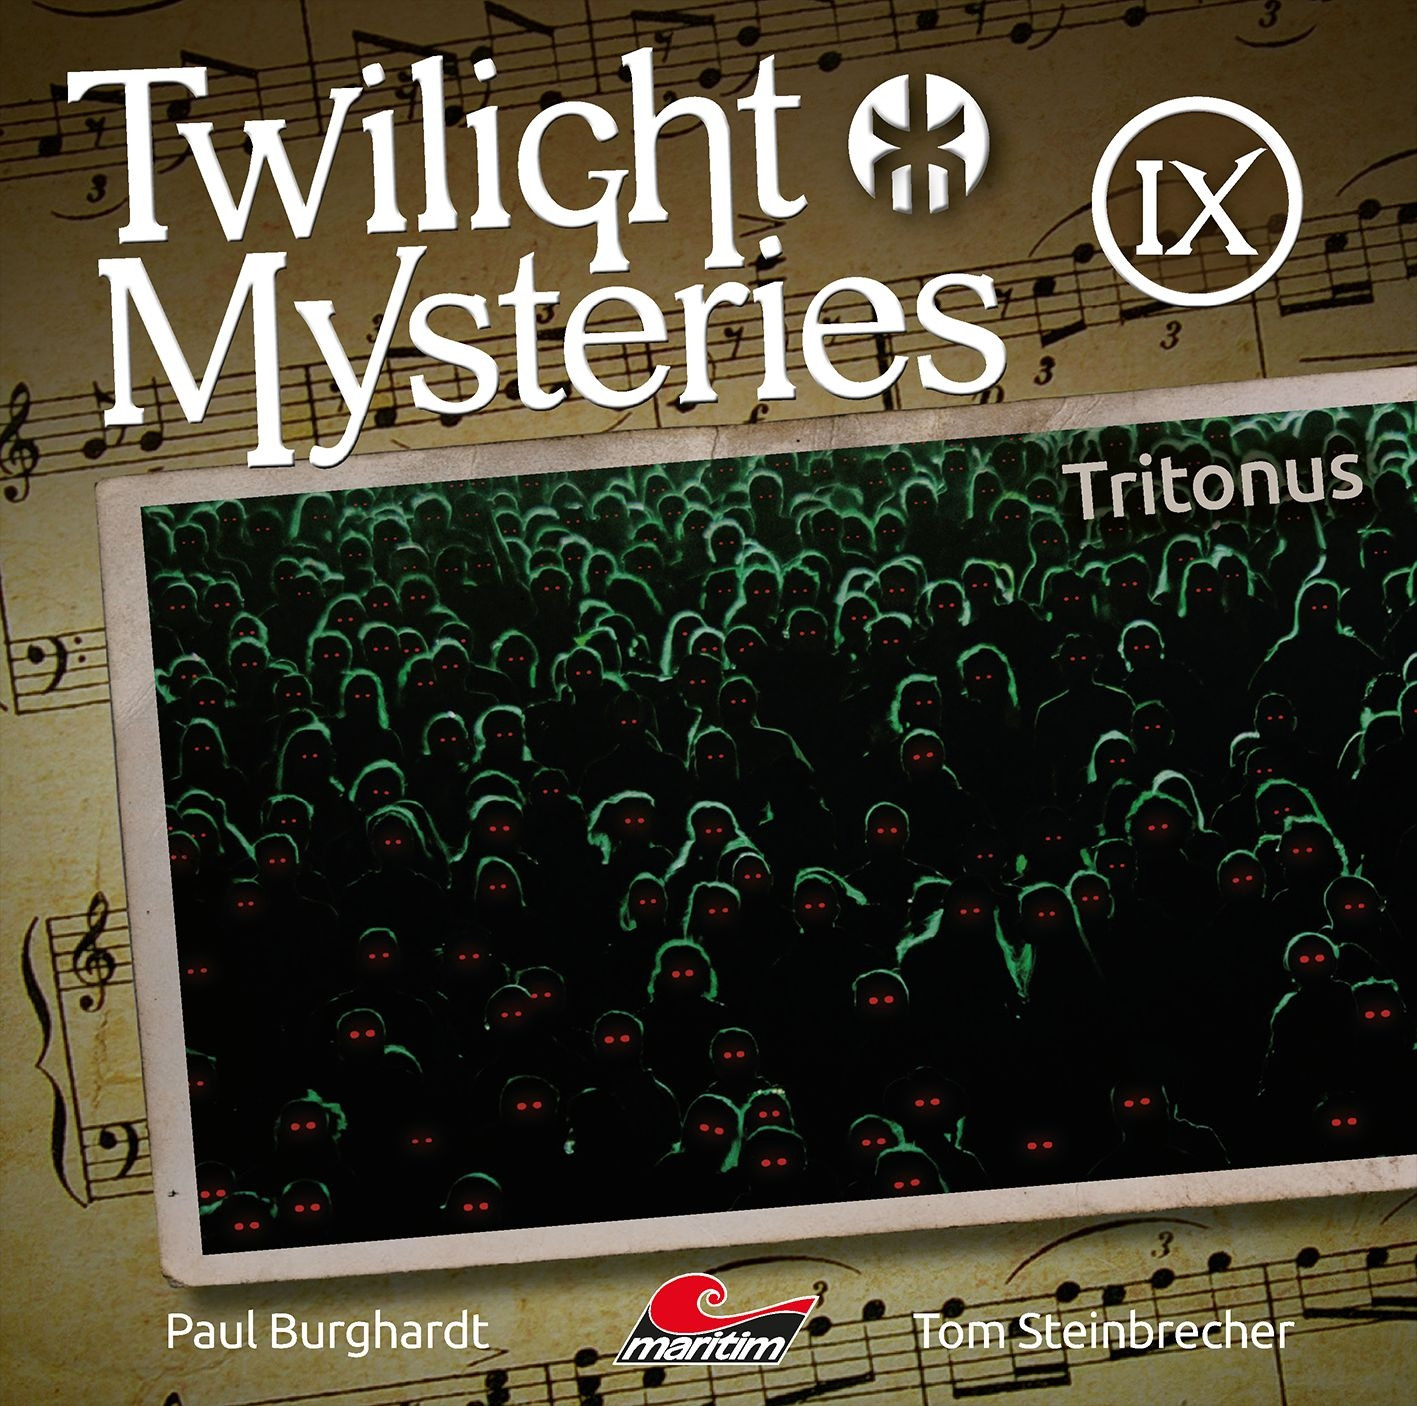 Twilight Mysteries - Folge 9: Tritonus